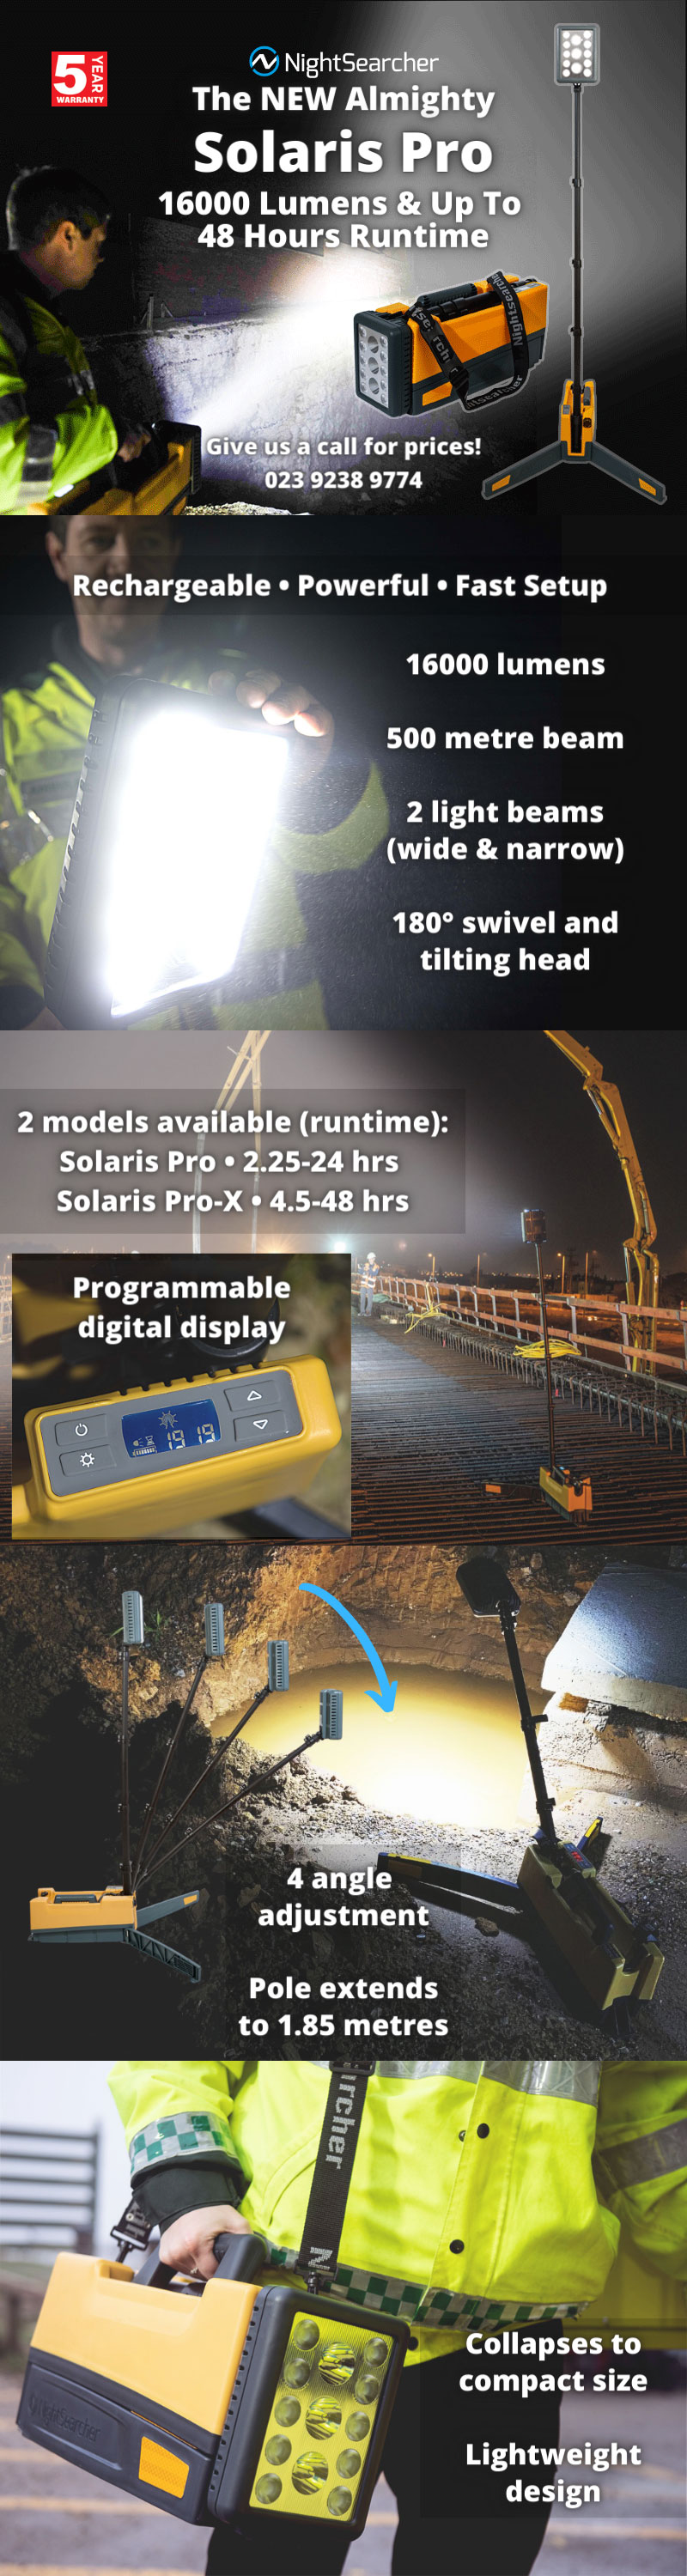 The NEW Almighty Solaris Pro Floodlight.